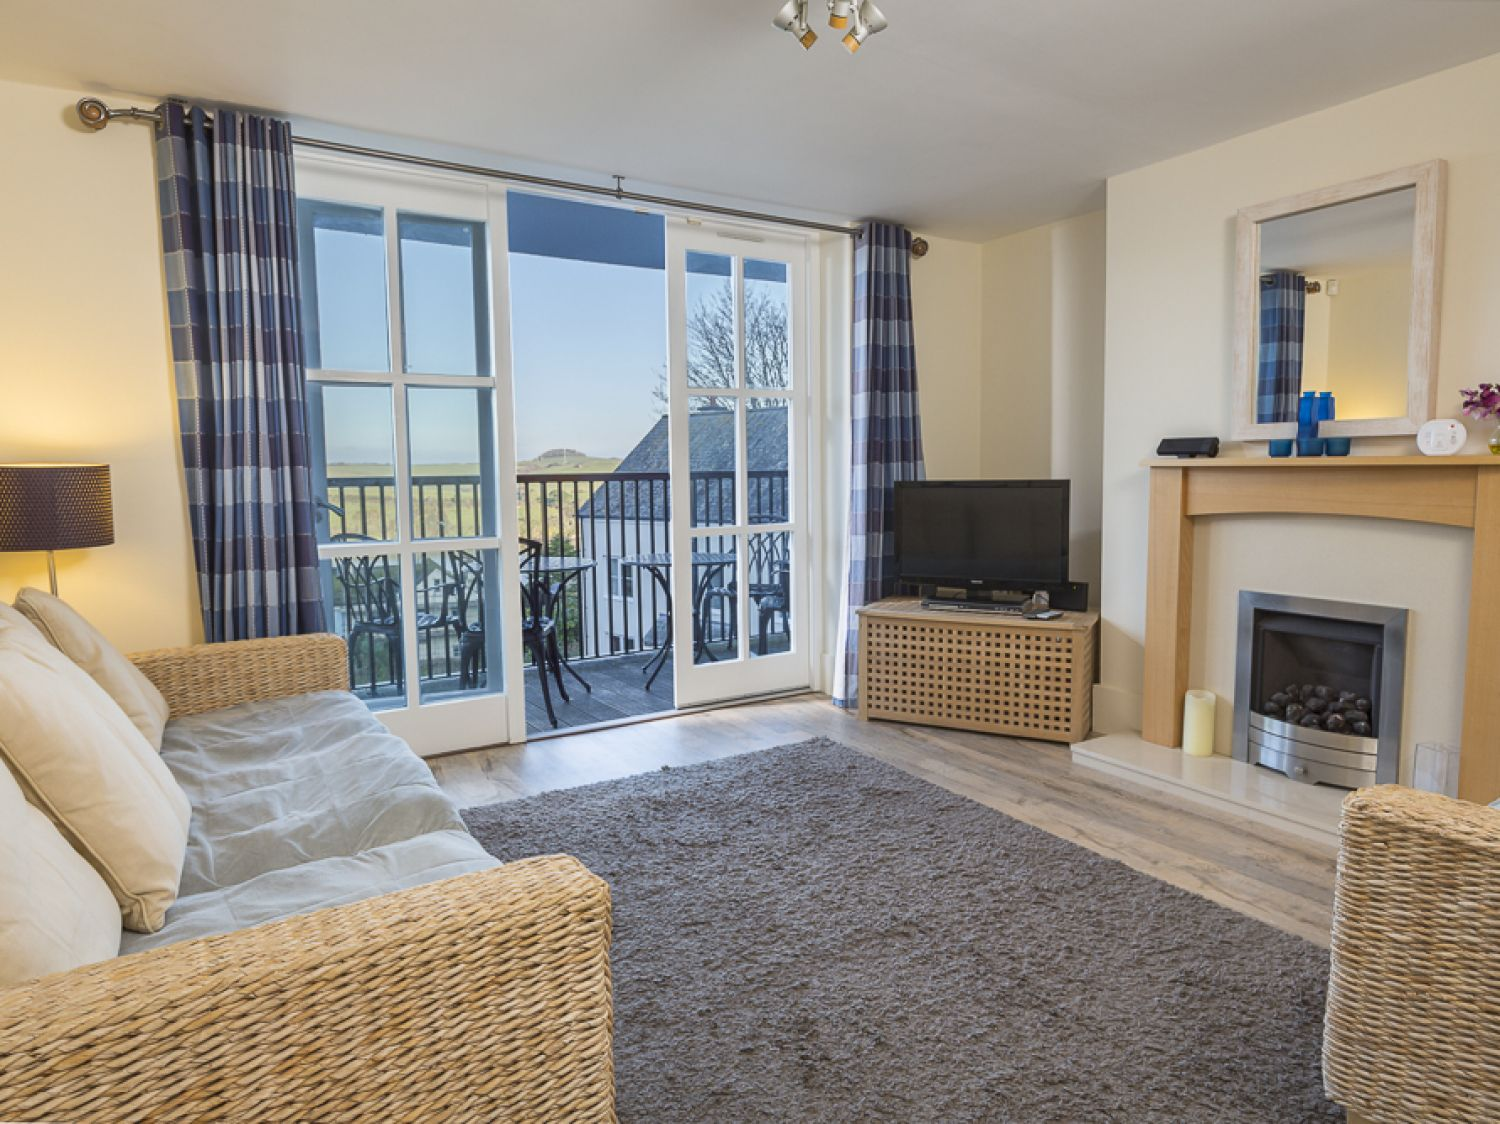 14 Combehaven - Devon - 994536 - photo 1